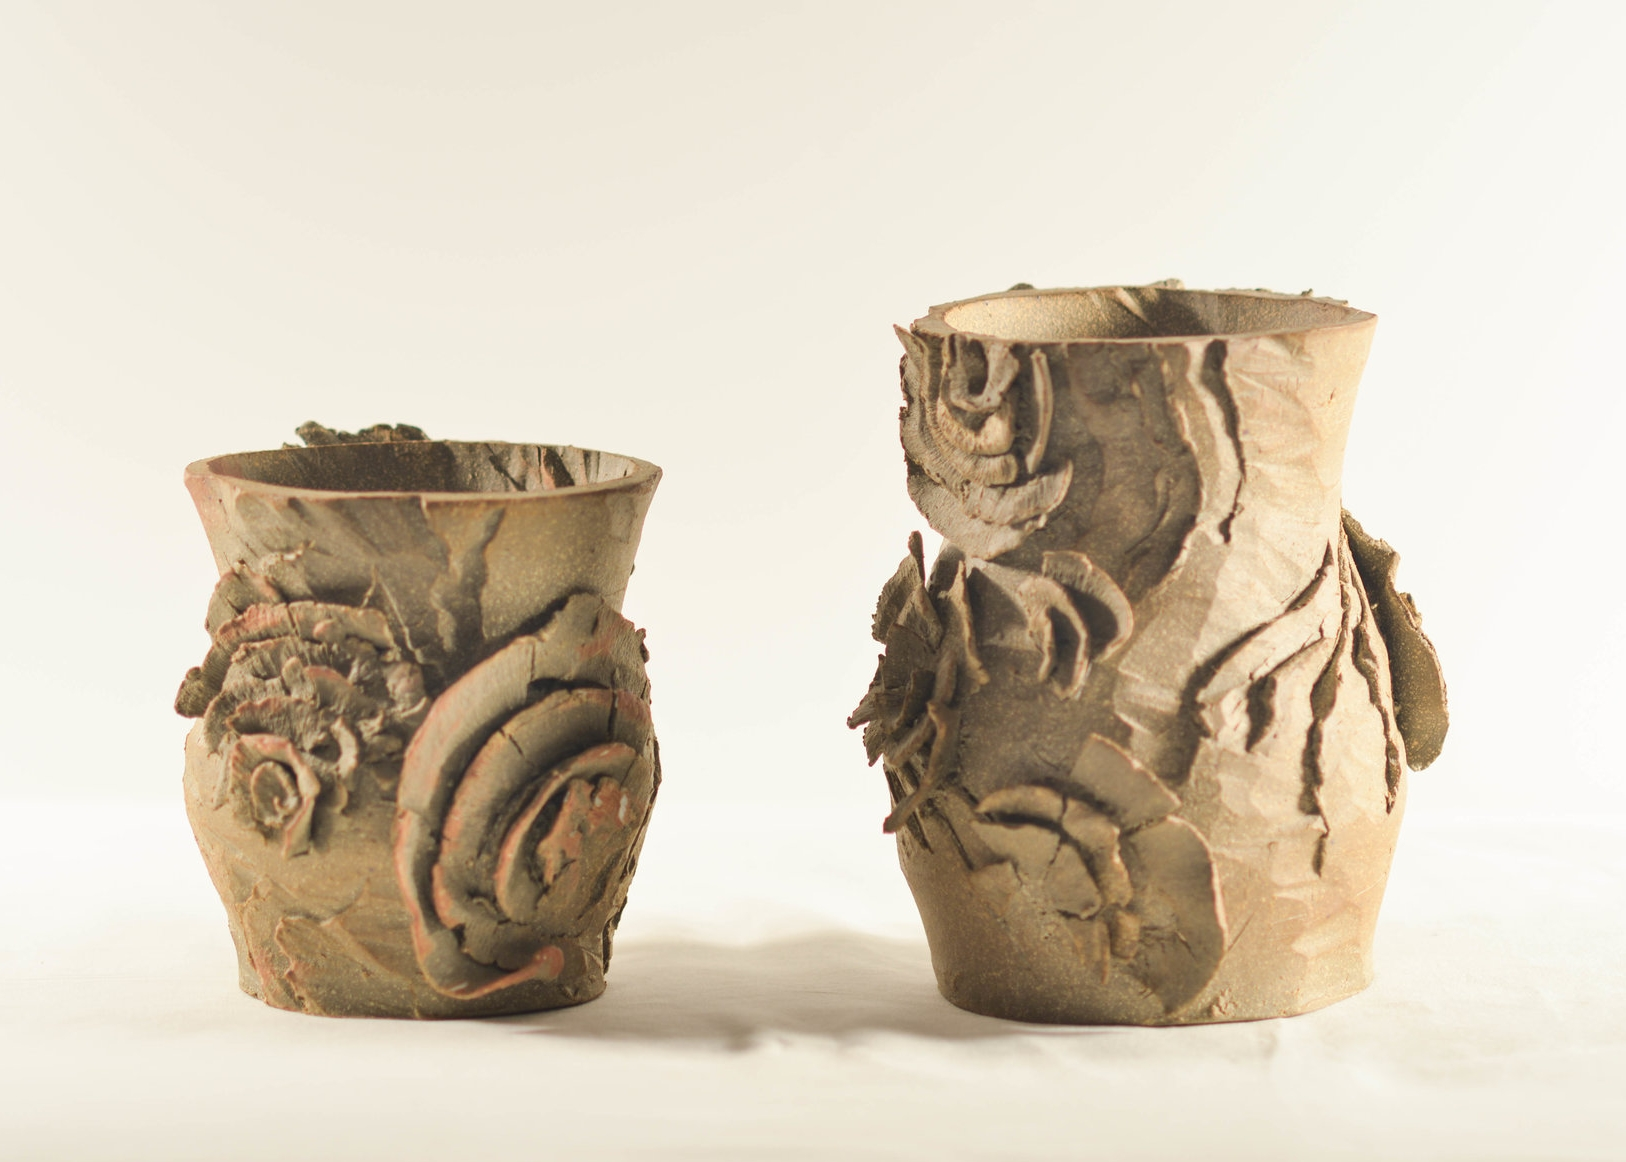 POTTERY - Wheelwork inspired by the natural world